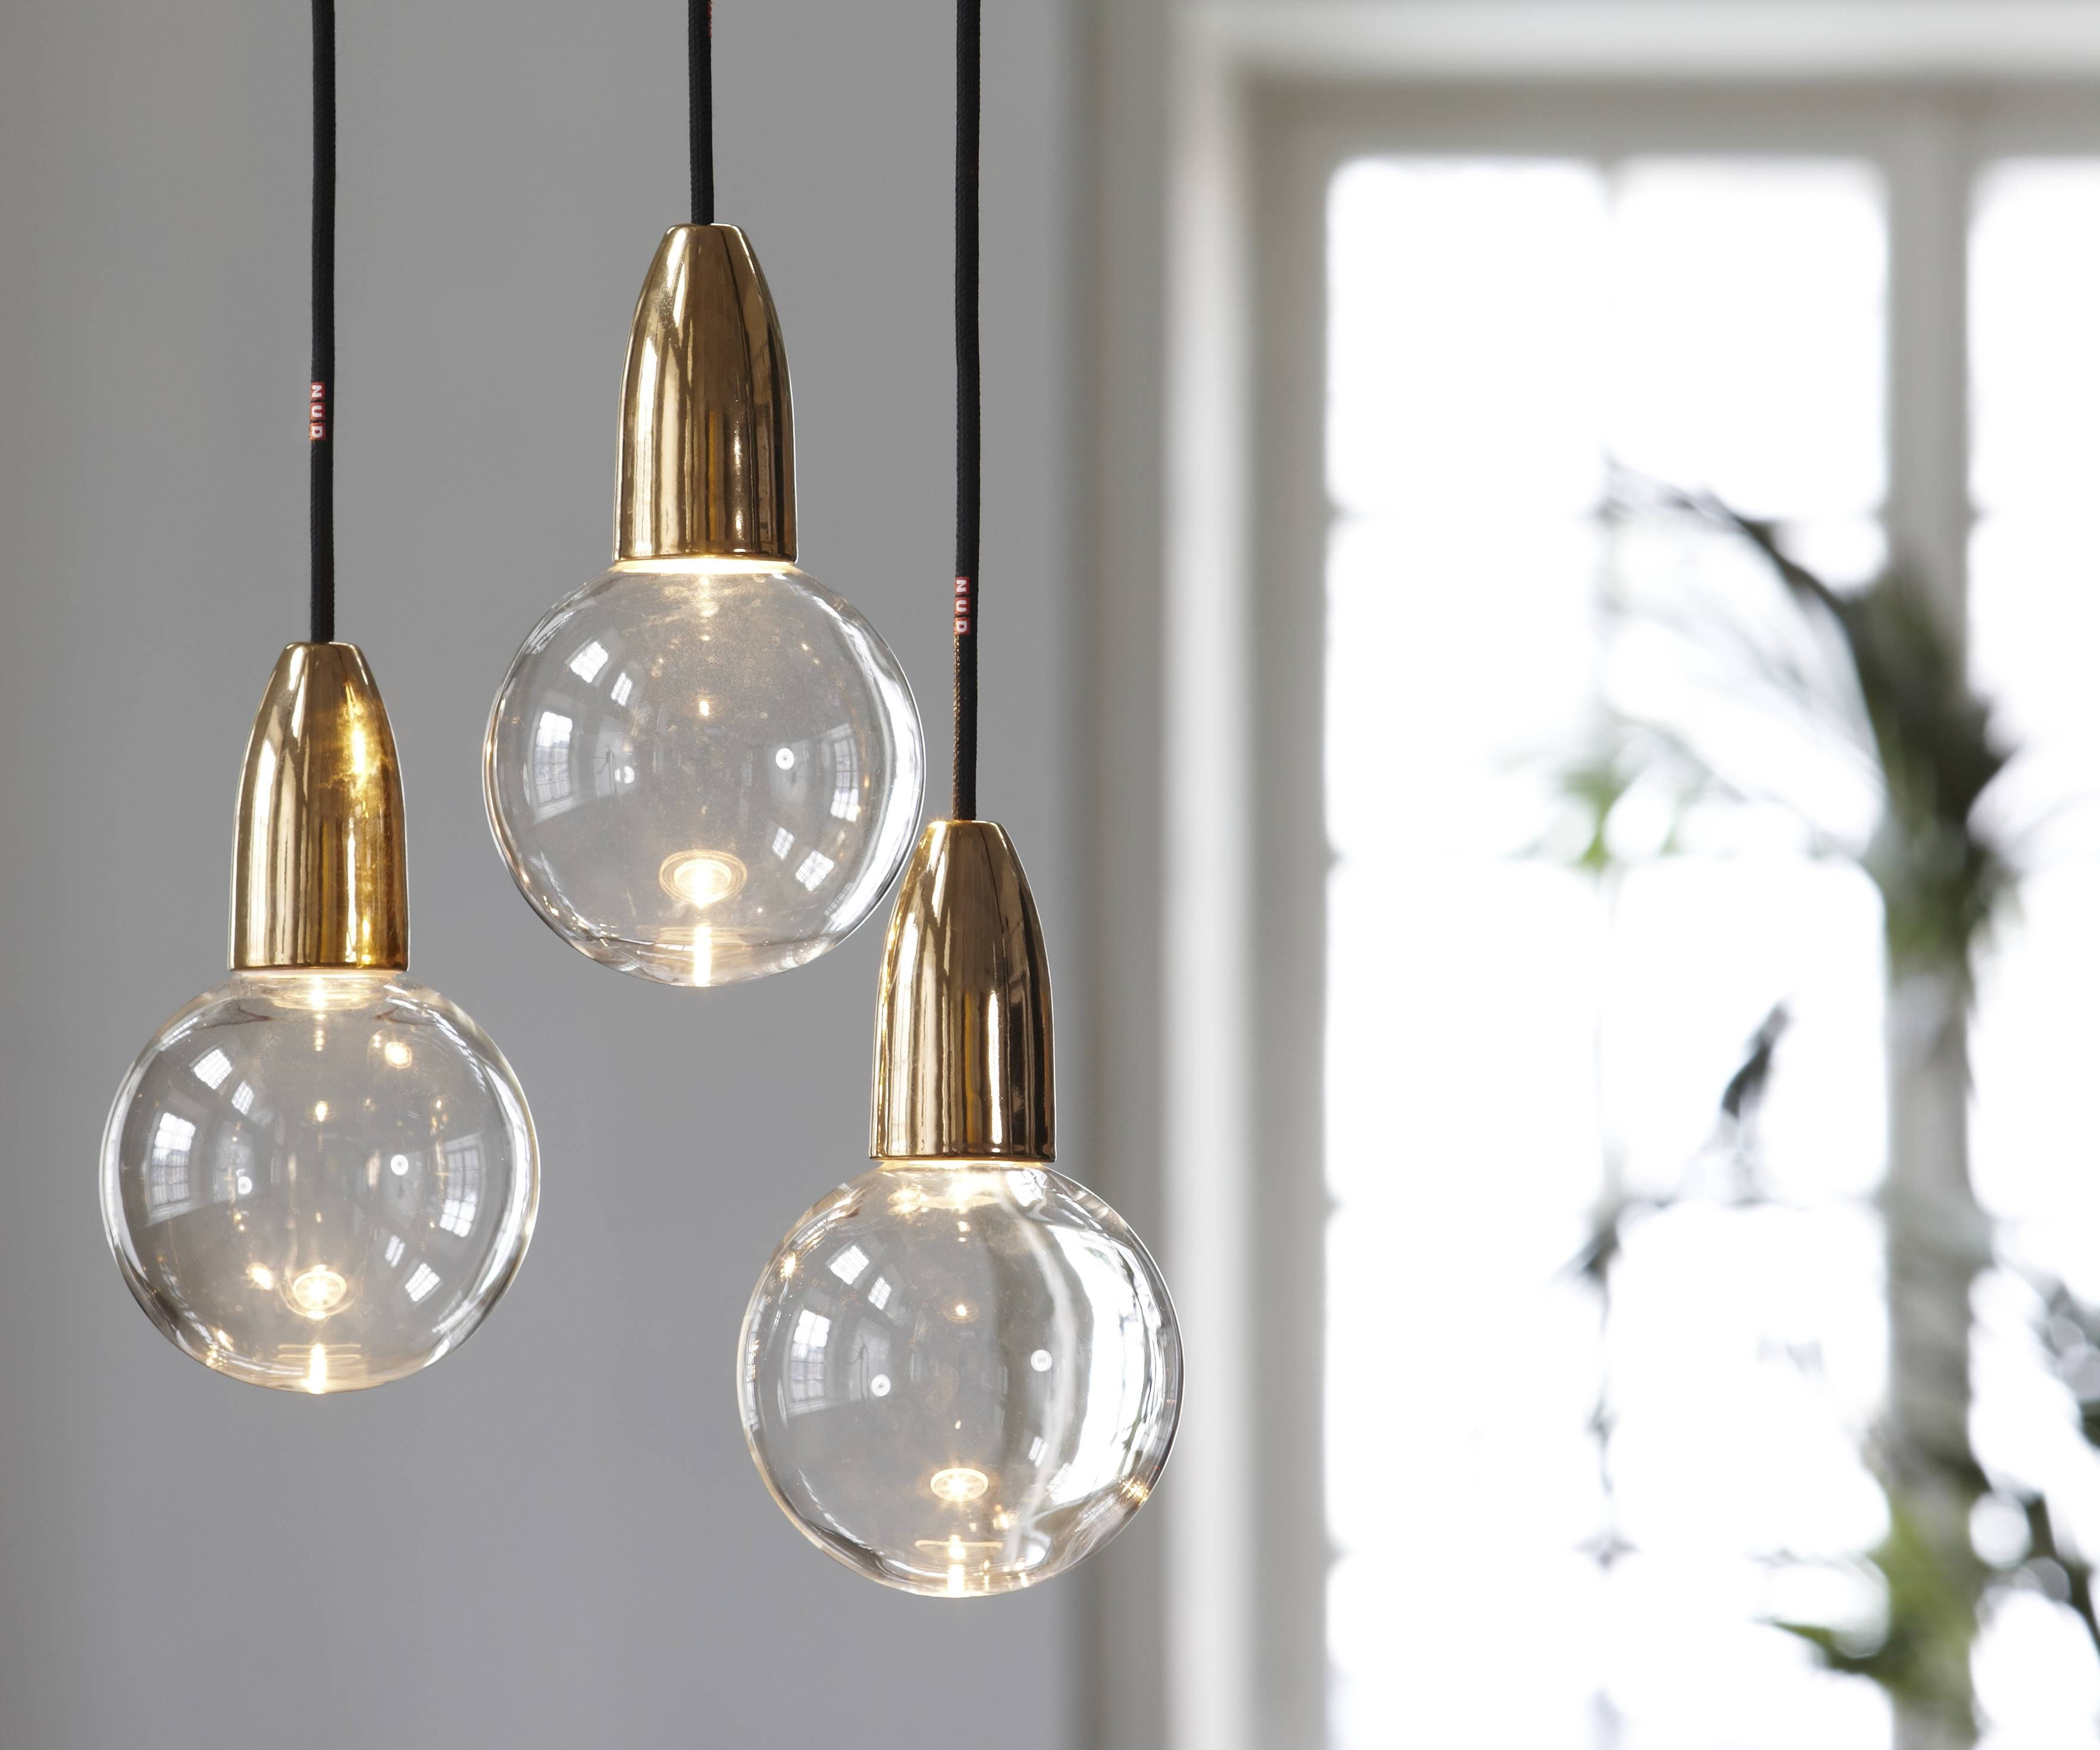 Light: Nud Classic Pendant Light In Nud Classic Pendant Lights (View 5 of 15)